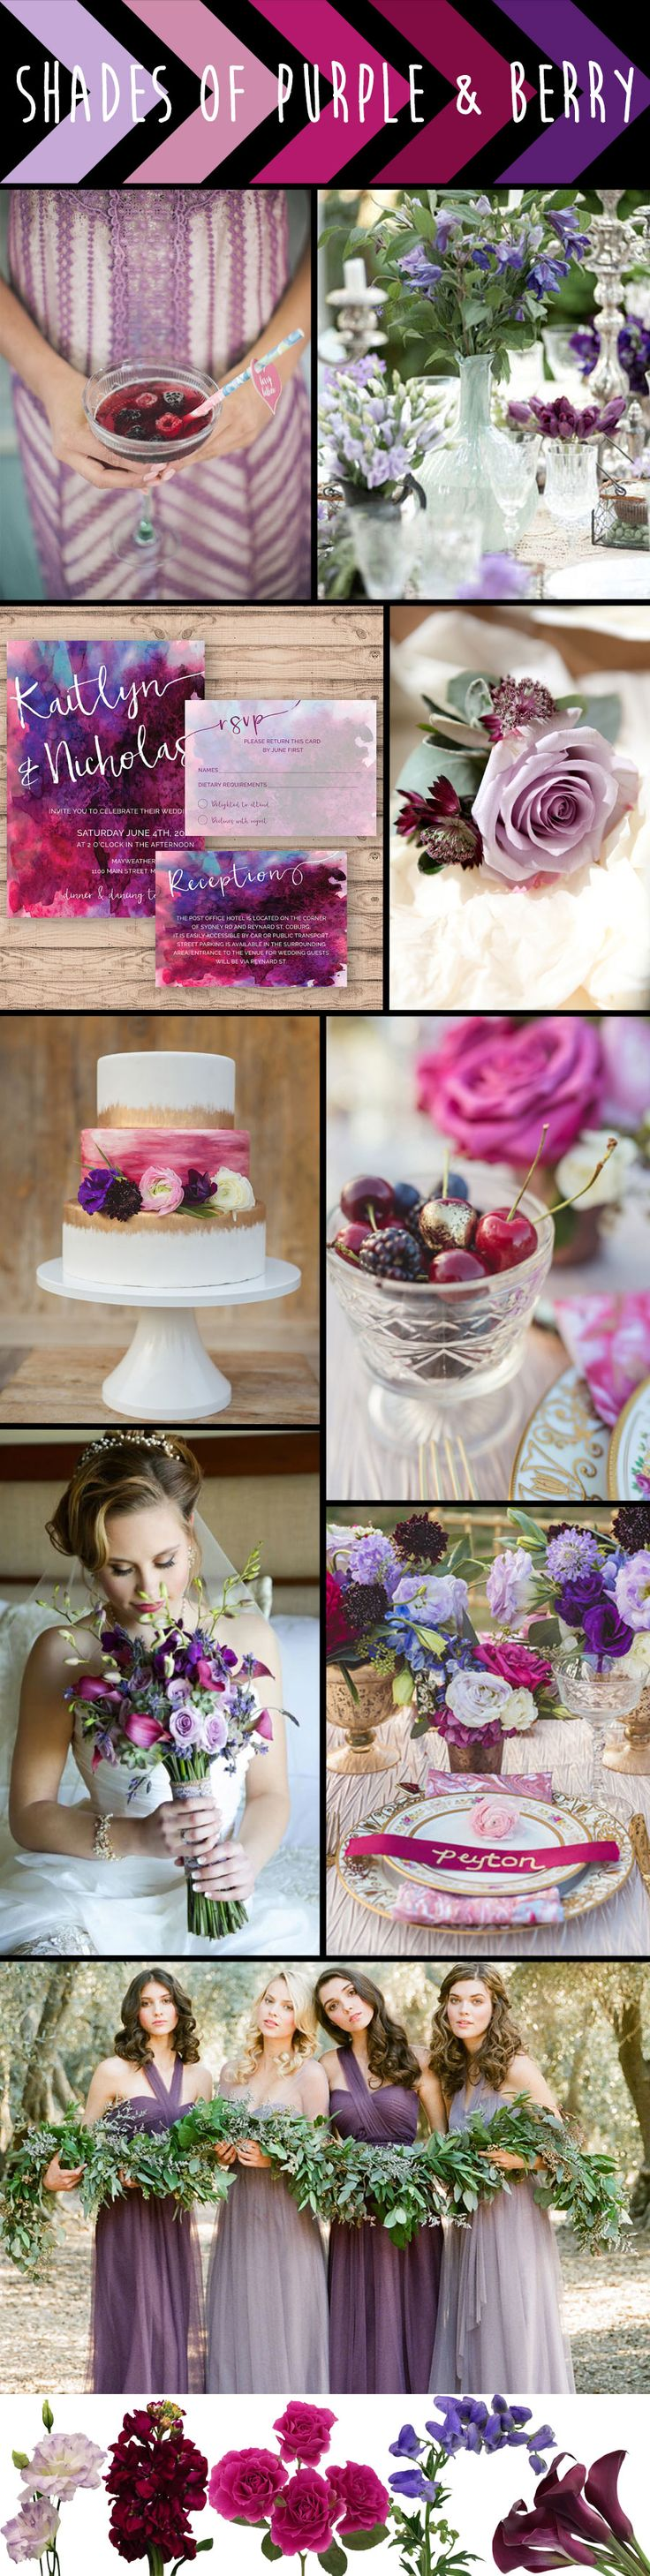 FiftyFlowers - Shades of Purple & Berry Wedding Inspiration